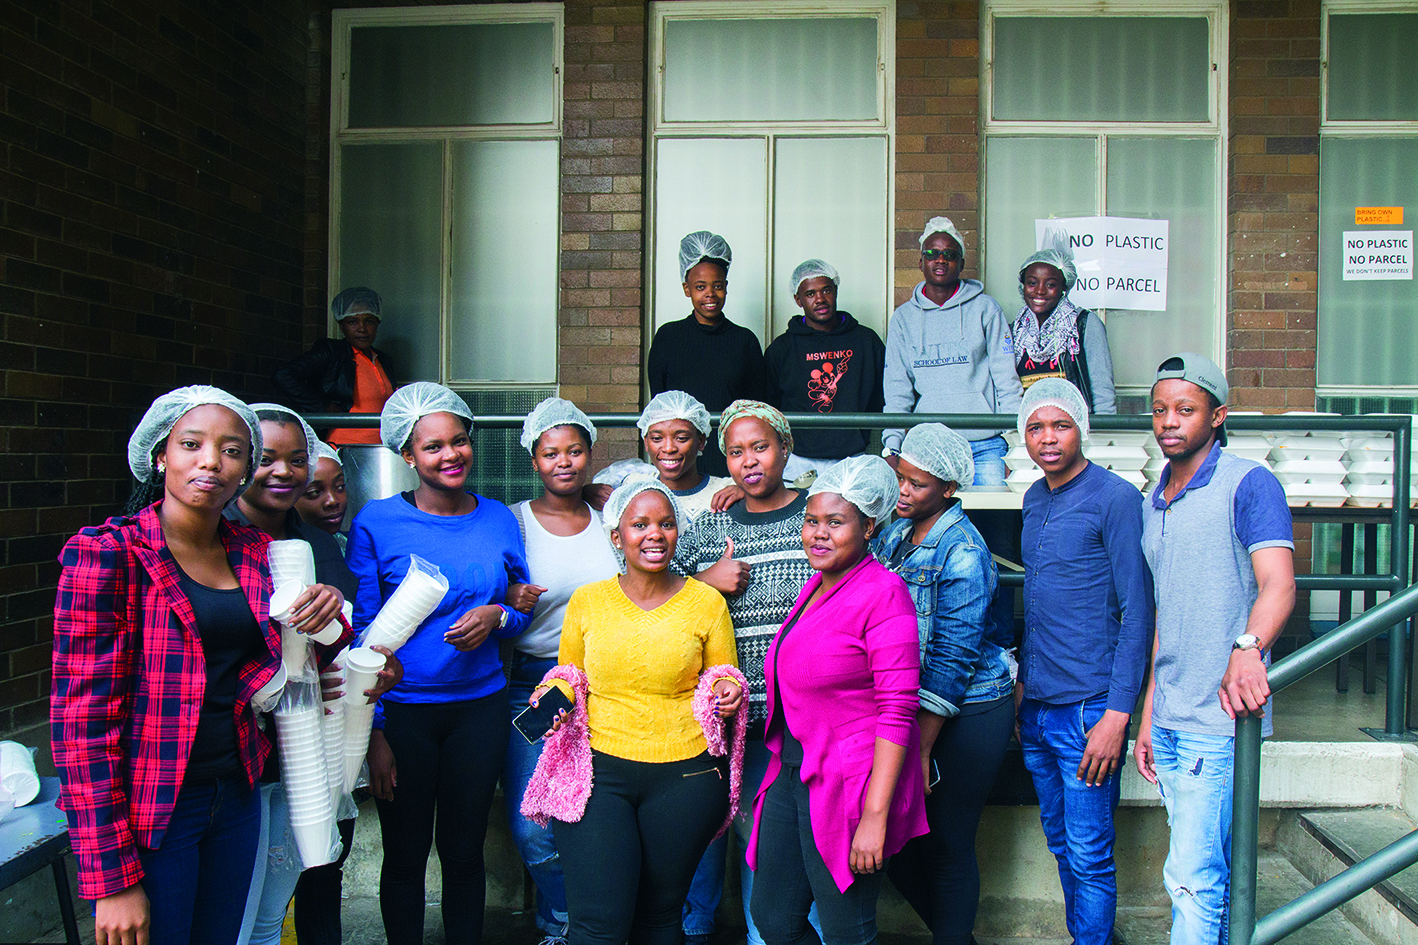 Student Volunteers lend a helping hand at the Student Feeding Scheme at Wits University